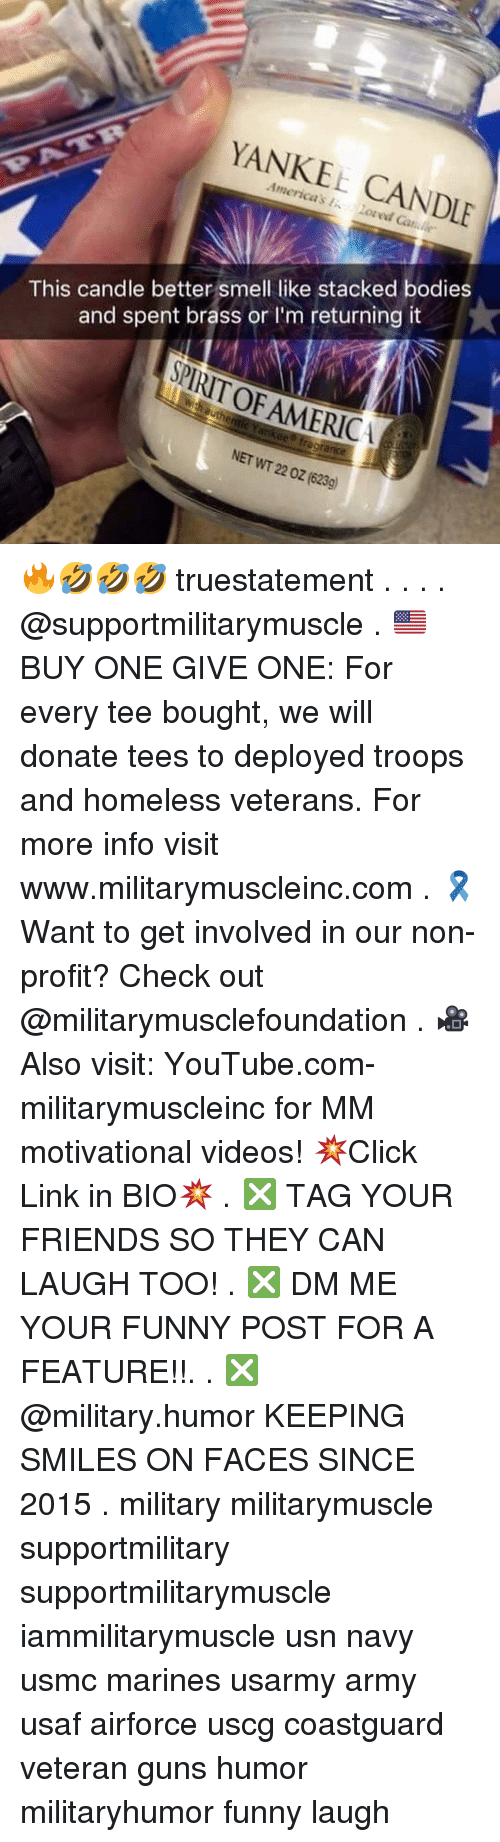 your funny: YANKEE CANDLE  This candle better smell like stacked bodies  and spent brass orI'm returning it  PIRIT OF AMERICA  ee fregrance  NET WT 22 0z (623g) 🔥🤣🤣🤣 truestatement . . . . @supportmilitarymuscle . 🇺🇸BUY ONE GIVE ONE: For every tee bought, we will donate tees to deployed troops and homeless veterans. For more info visit www.militarymuscleinc.com . 🎗Want to get involved in our non-profit? Check out @militarymusclefoundation . 🎥Also visit: YouTube.com-militarymuscleinc for MM motivational videos! 💥Click Link in BIO💥 . ❎ TAG YOUR FRIENDS SO THEY CAN LAUGH TOO! . ❎ DM ME YOUR FUNNY POST FOR A FEATURE!!. . ❎ @military.humor KEEPING SMILES ON FACES SINCE 2015 . military militarymuscle supportmilitary supportmilitarymuscle iammilitarymuscle usn navy usmc marines usarmy army usaf airforce uscg coastguard veteran guns humor militaryhumor funny laugh